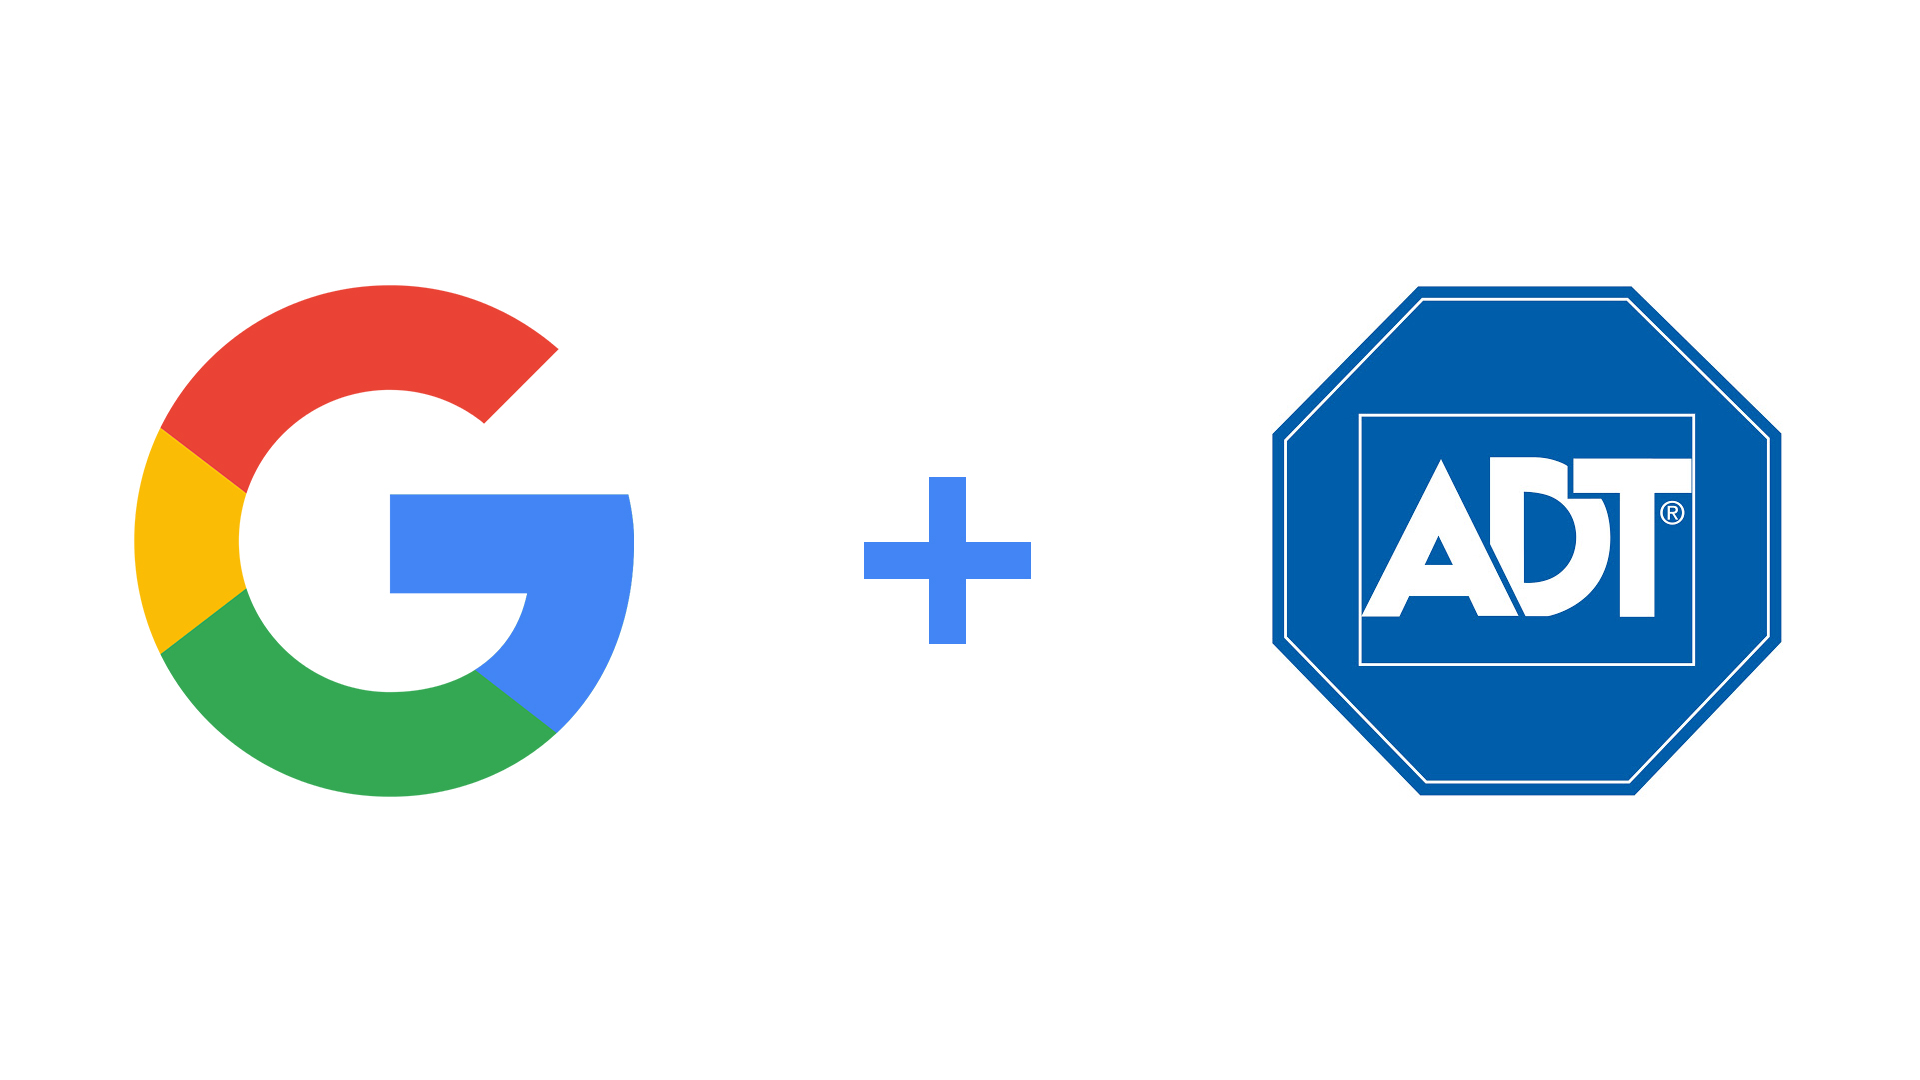 Google's partnership with ADT begins taking shape with Nest installation services and more